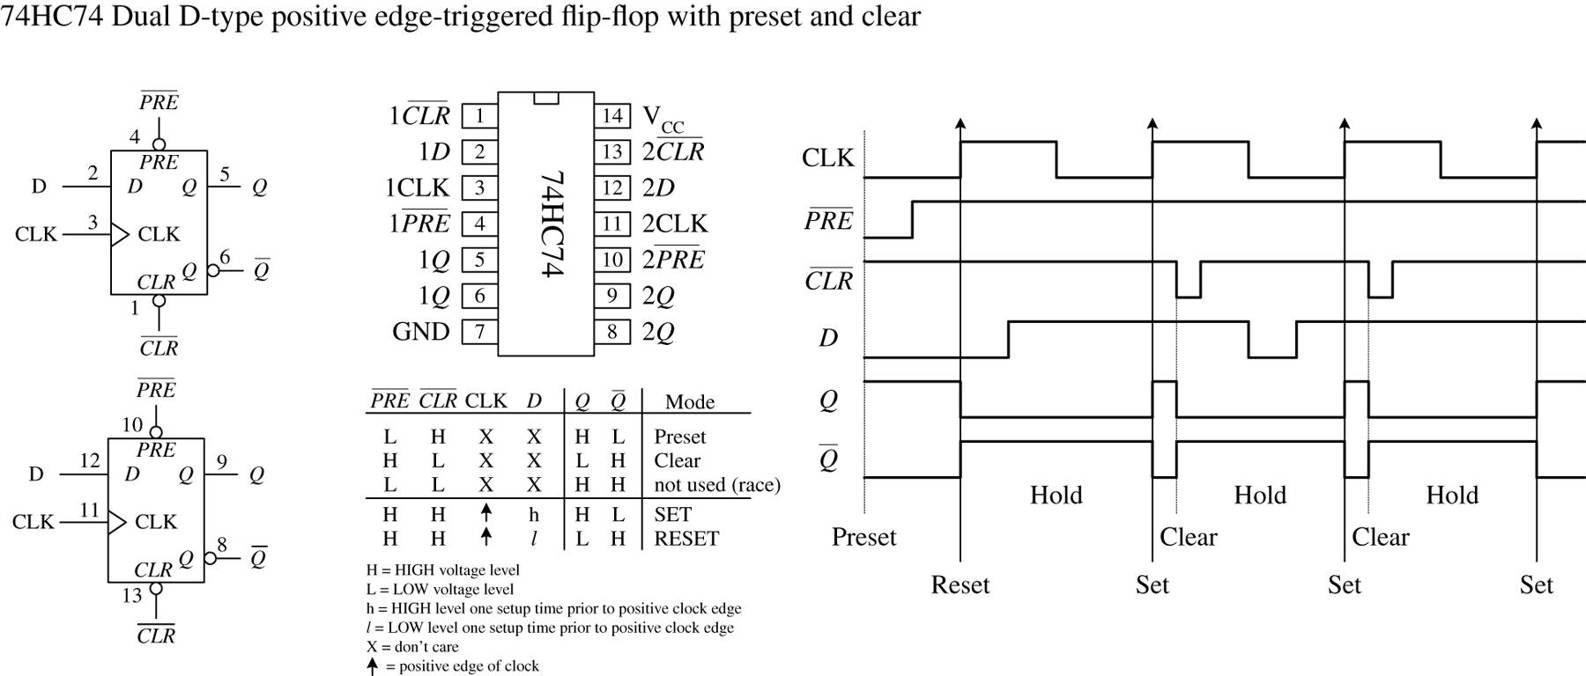 Digital Electronics Practical For Inventors Fourth D Type Flip Flop Circuit Diagram Figure 1266 Shows A Popular Edge Triggered Ic The 7474 Example 74hc74 It Contains Two Positive